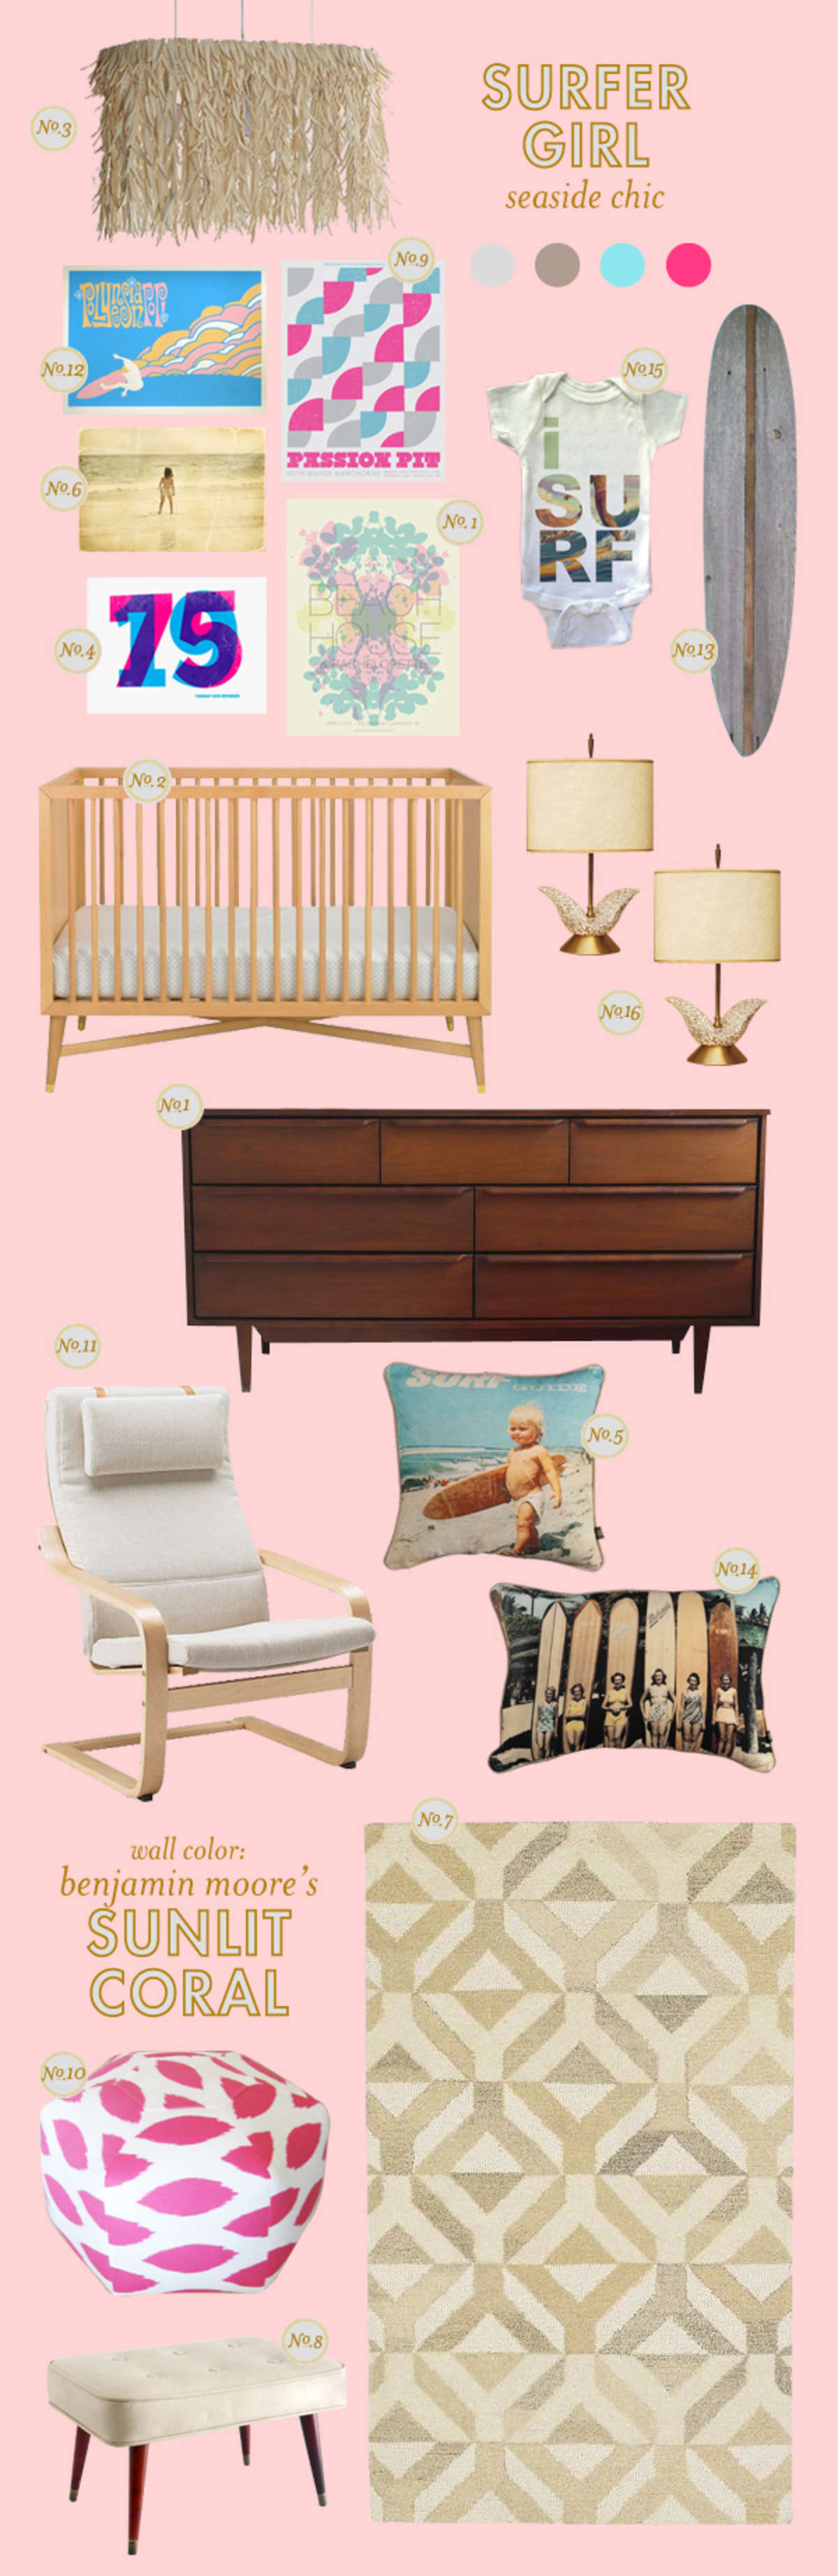 surfer girl nursery ideas